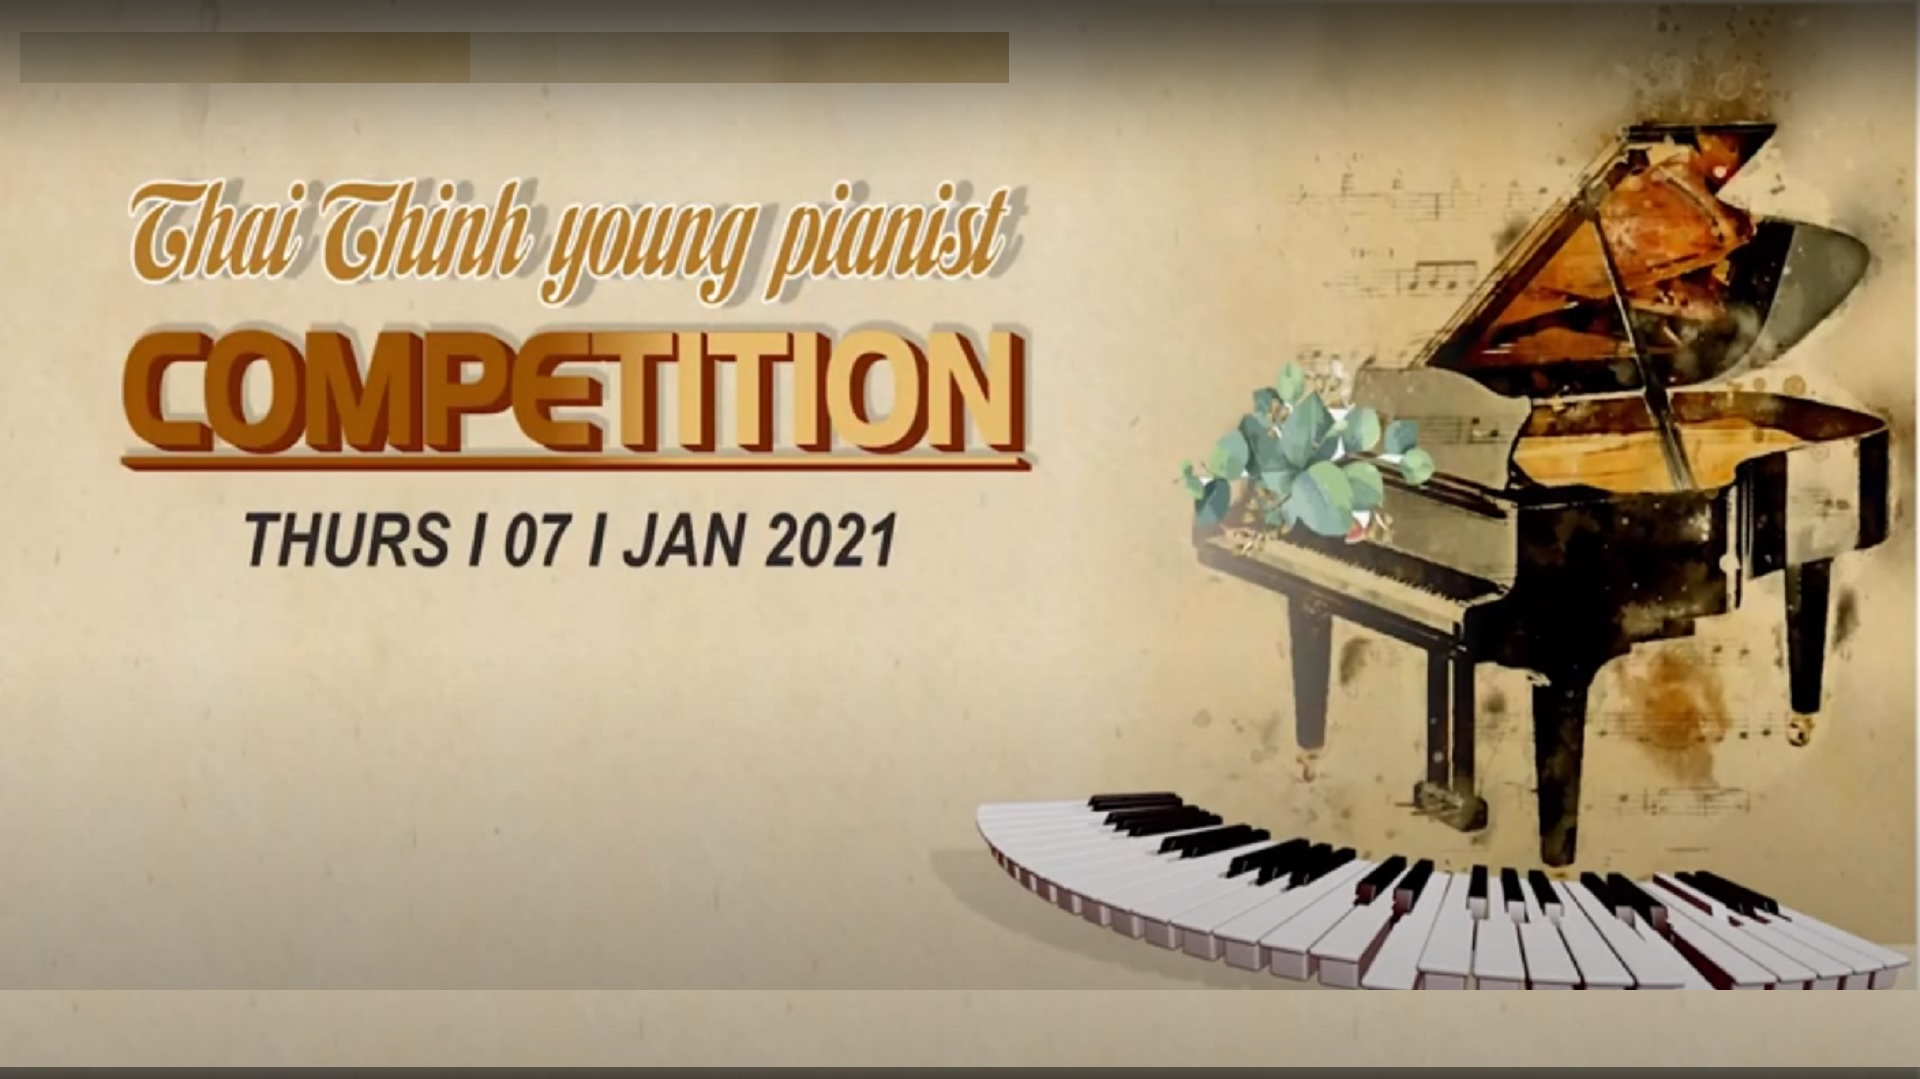 THAI THINH YOUNG PIANIST COMPETITION